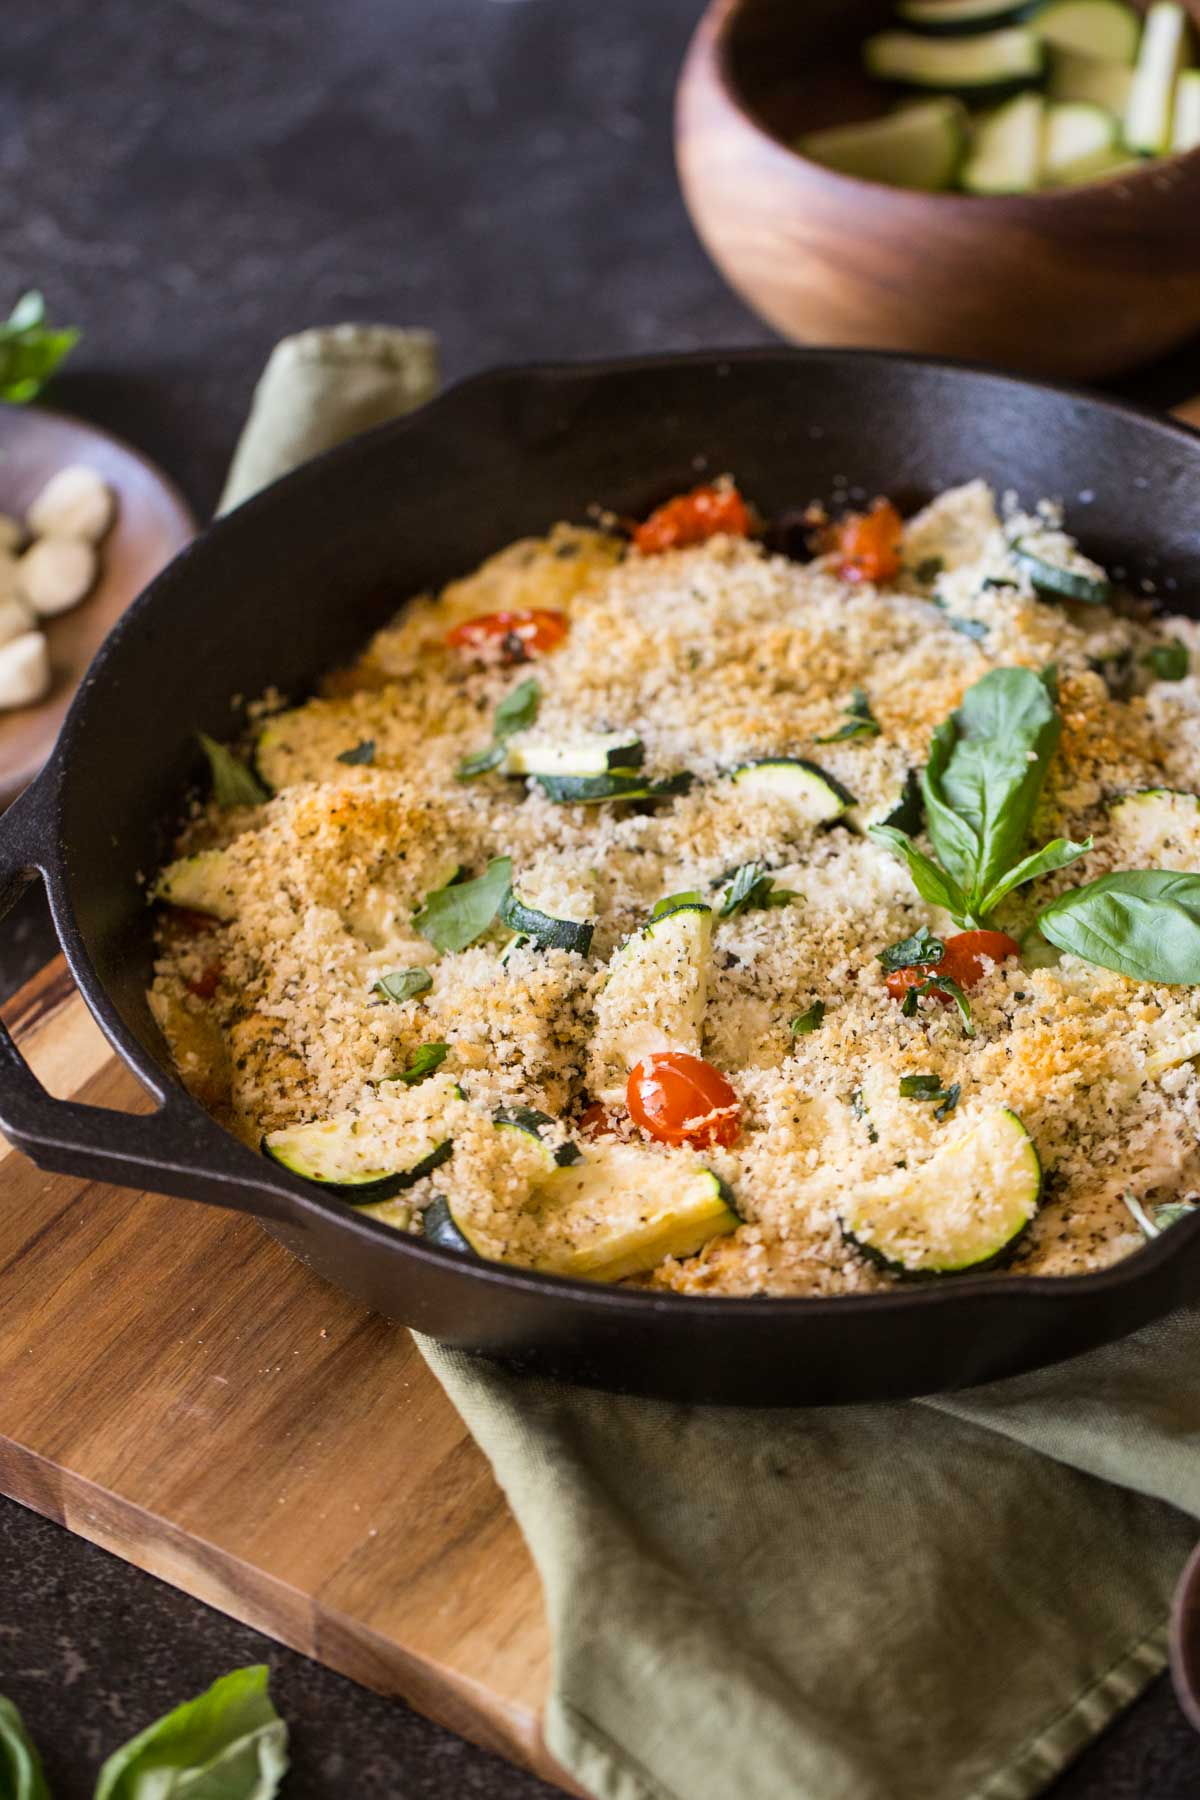 This Pesto Chicken Skillet could not be more perfect for summer with caramelized cherry tomatoes, plus zucchini and basil too.